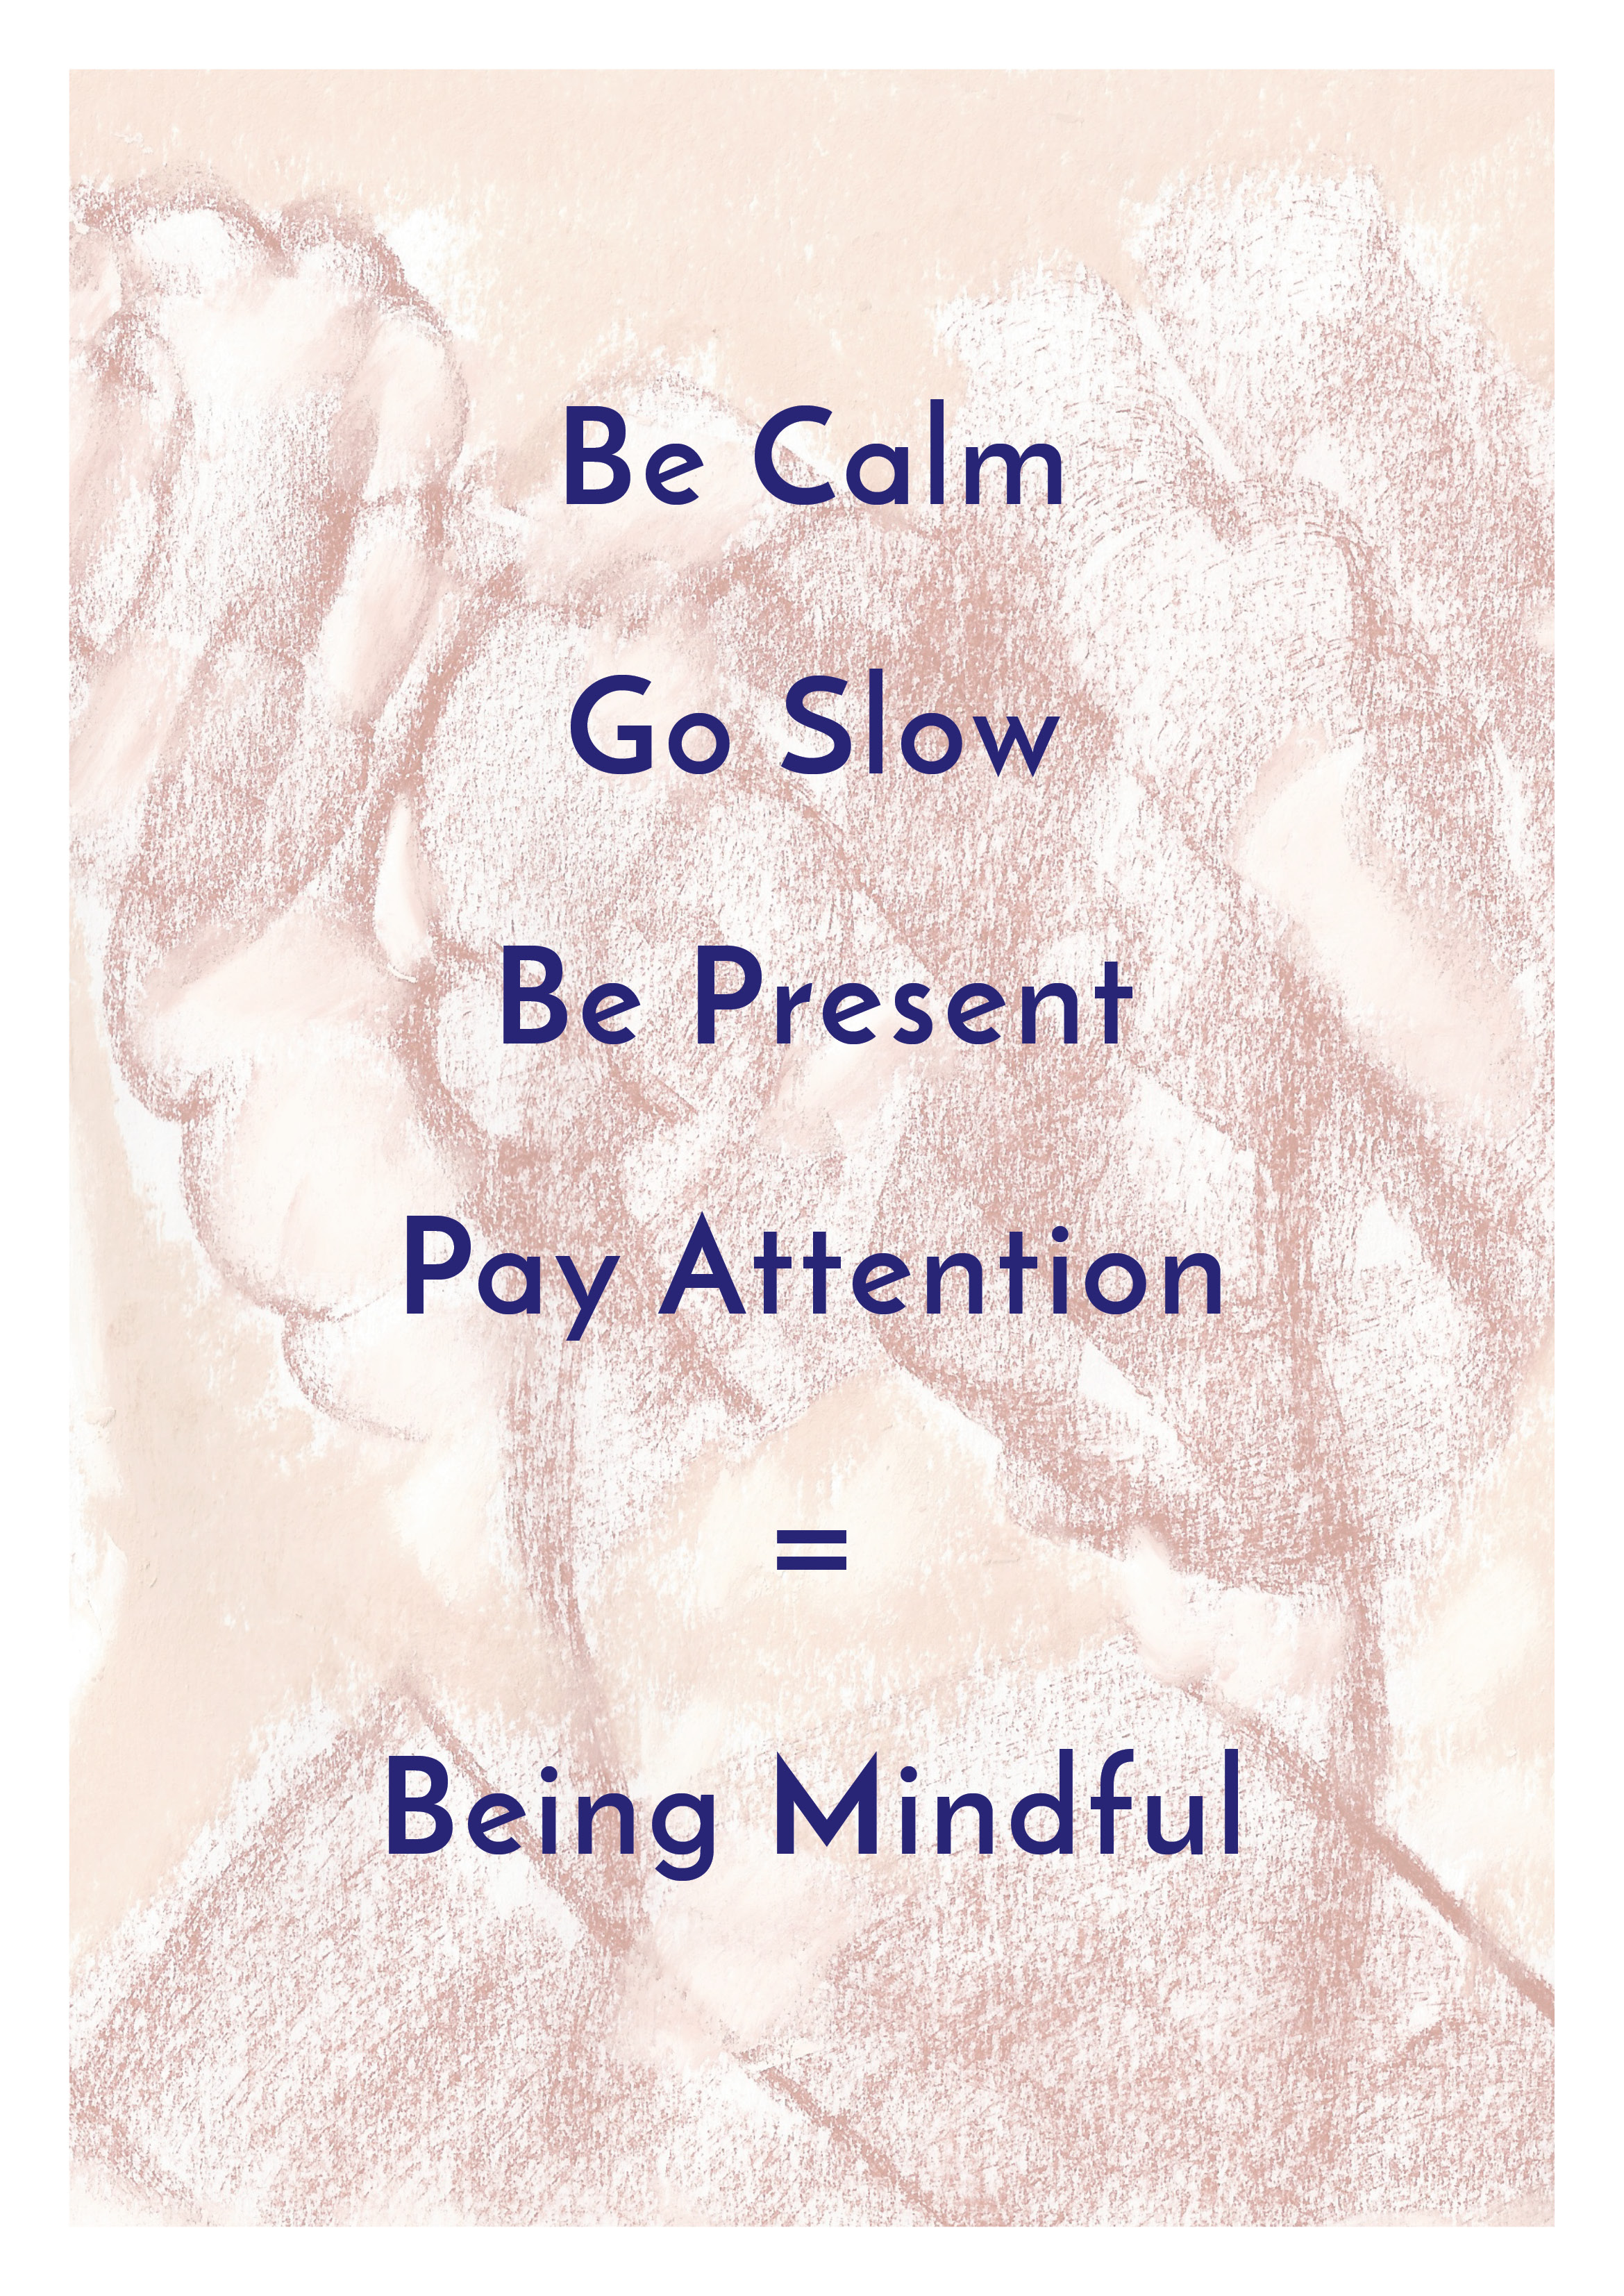 BEING MINDFUL POSTER_image.jpg